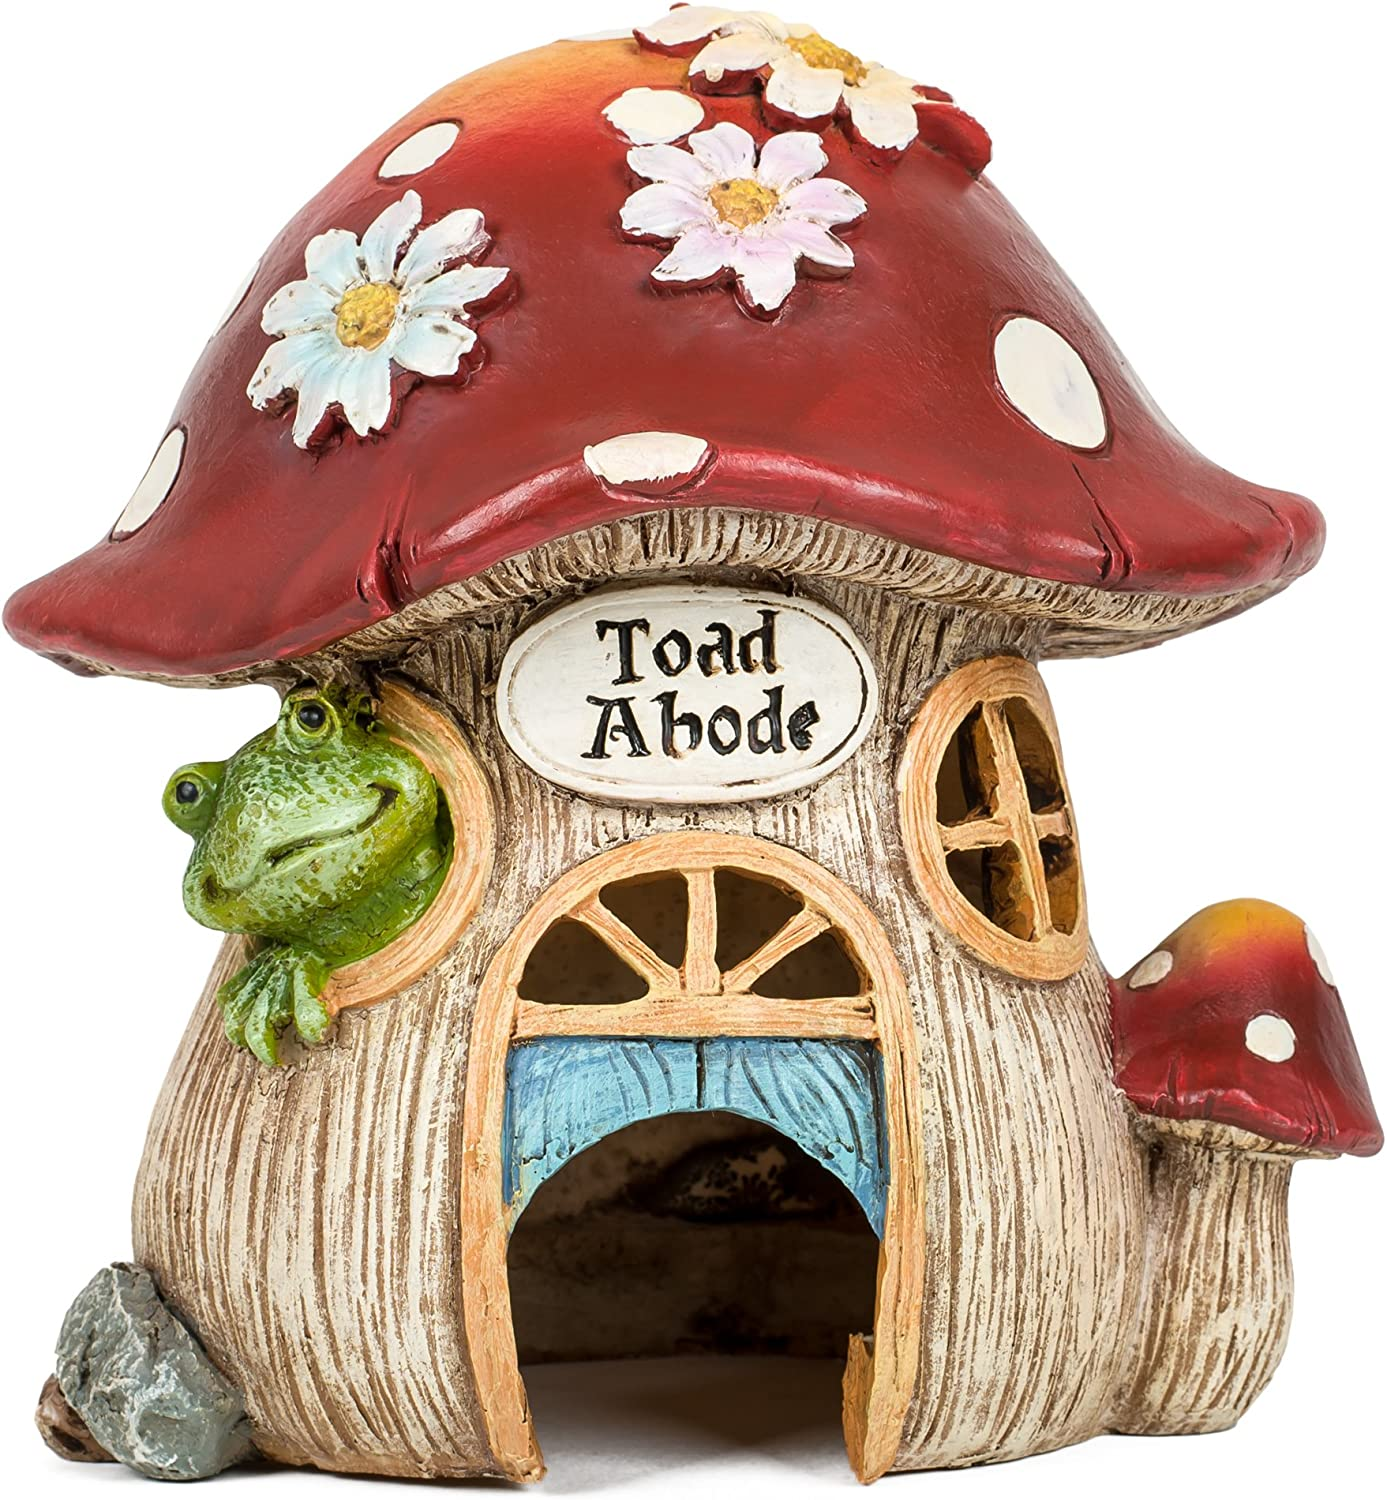 Joseph Studio 65905 Tall Decorative Mushroom Toad Abode Statue, 8-Inch